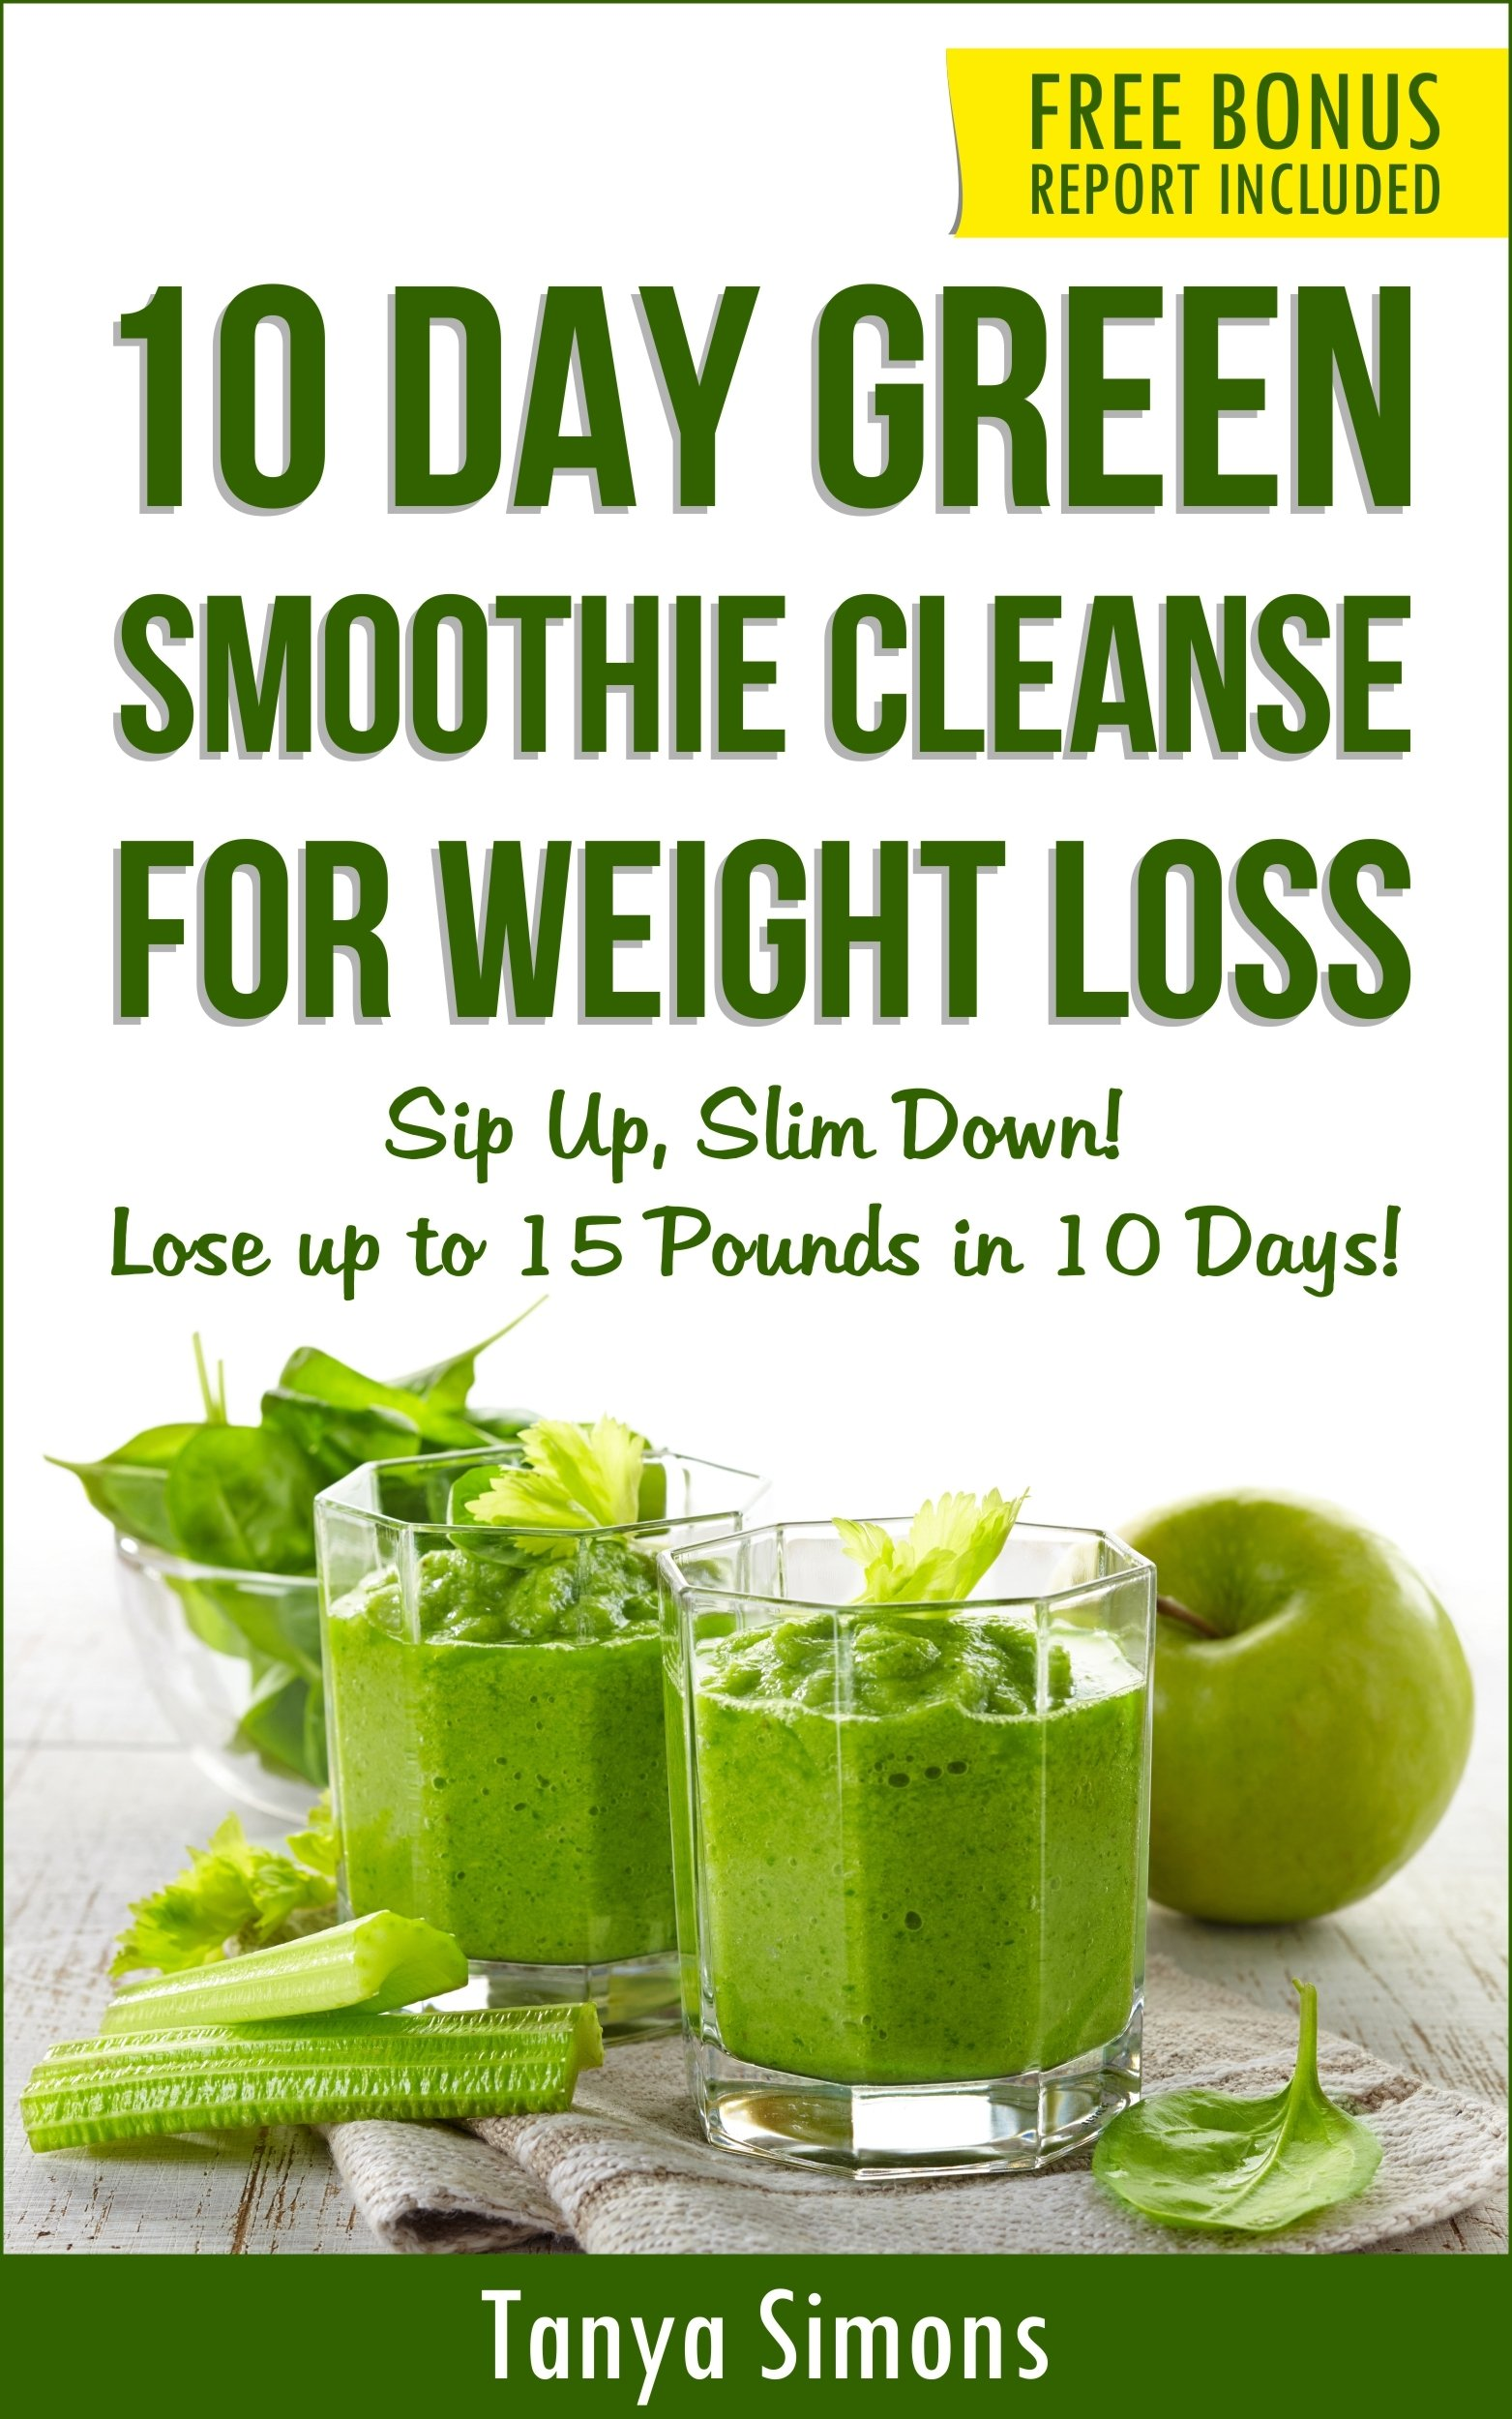 Day Green Smoothie Cleanse Smoothies 10 ebook